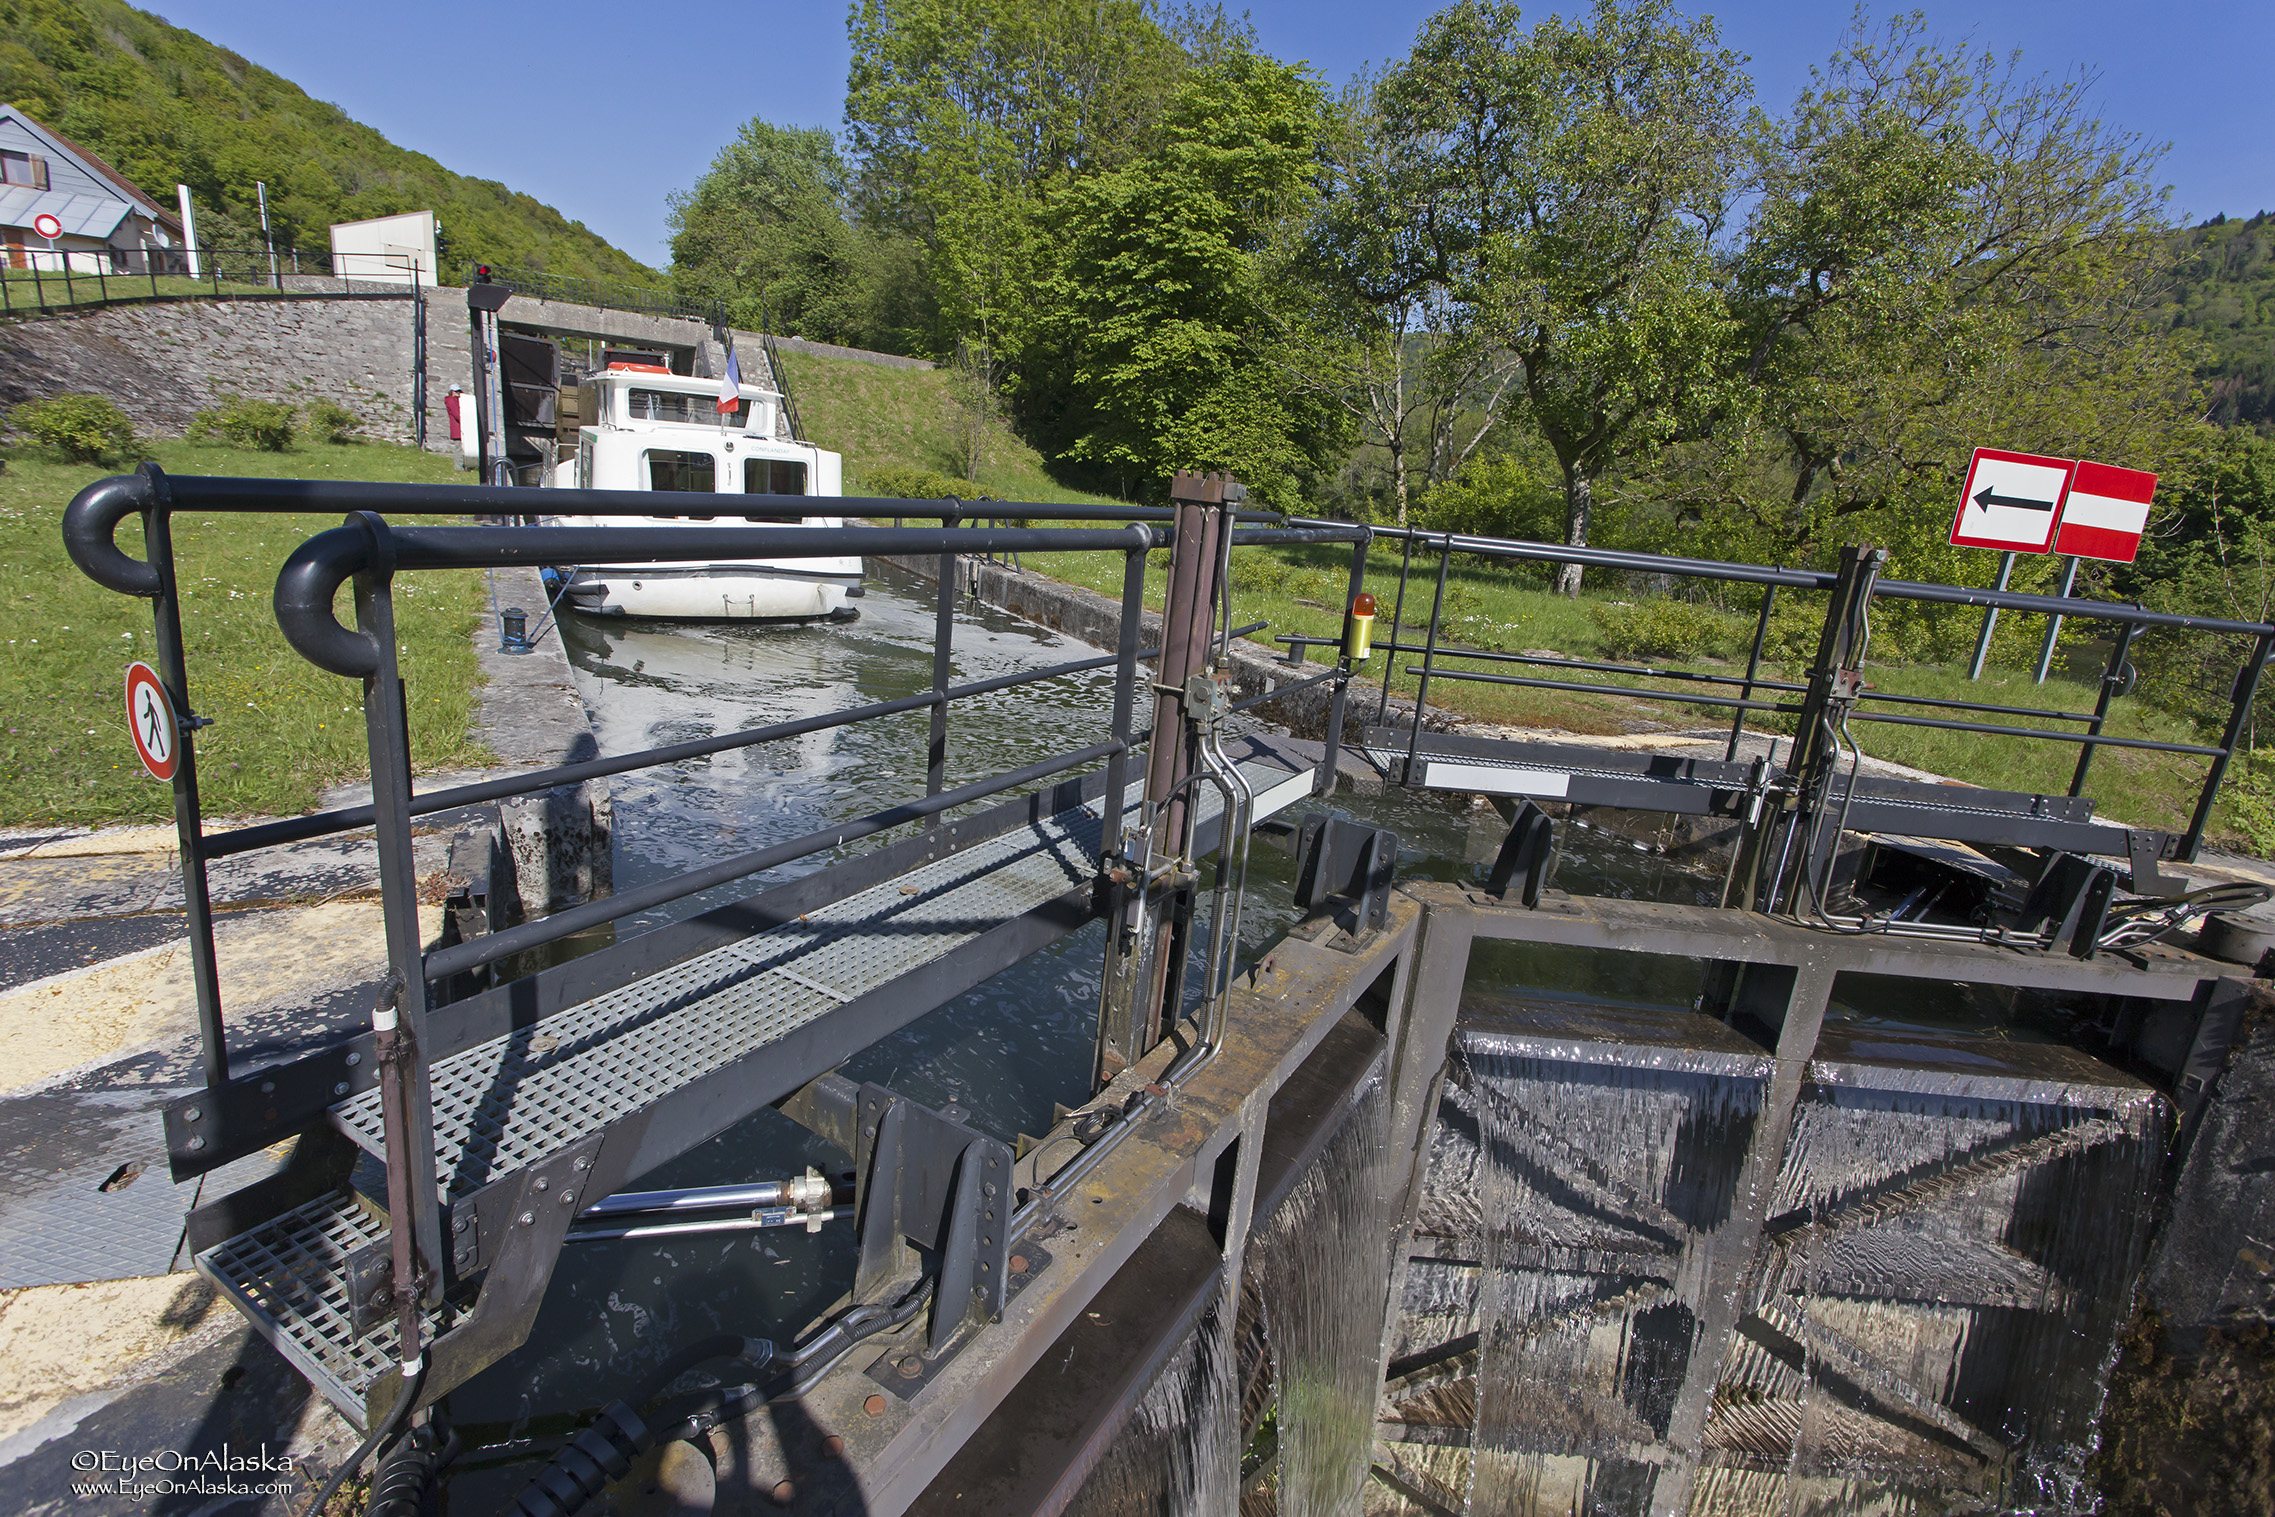 Our final lock of the trip, and it's a double! You go in the first gates, rise up, pull into the second section of lock, close gates behind you and rise up again. Almost 25 feet rise on this.